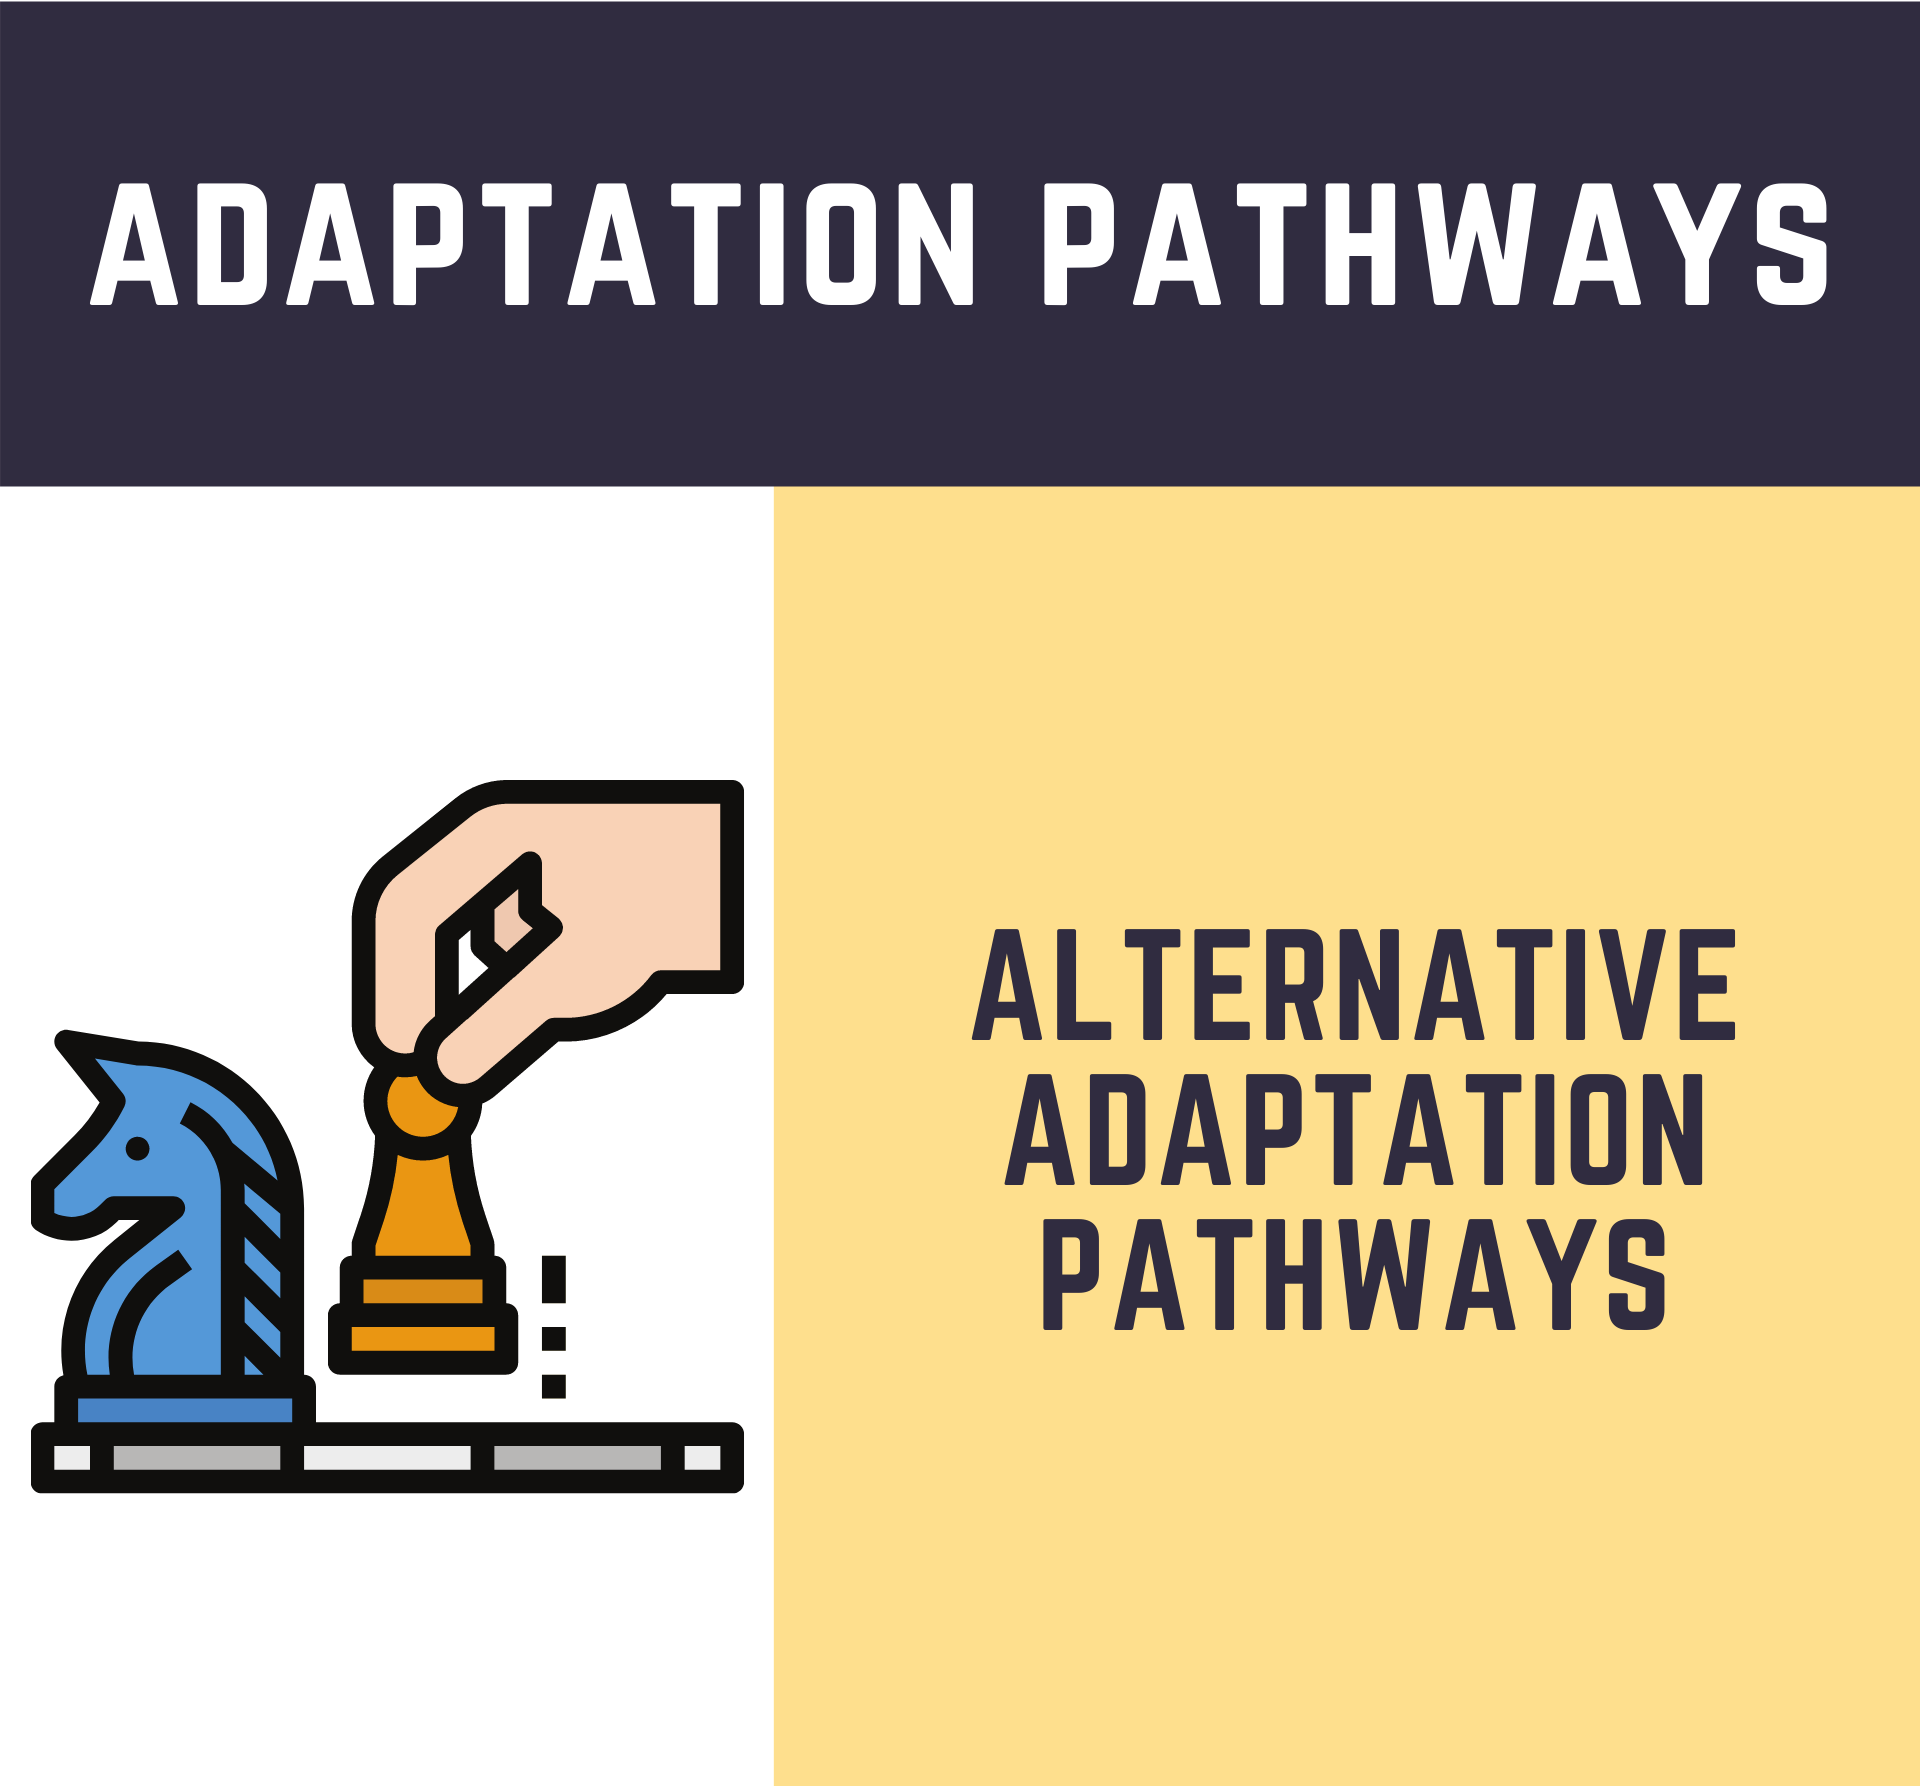 Alternative Adaptation Pathways for the Islands